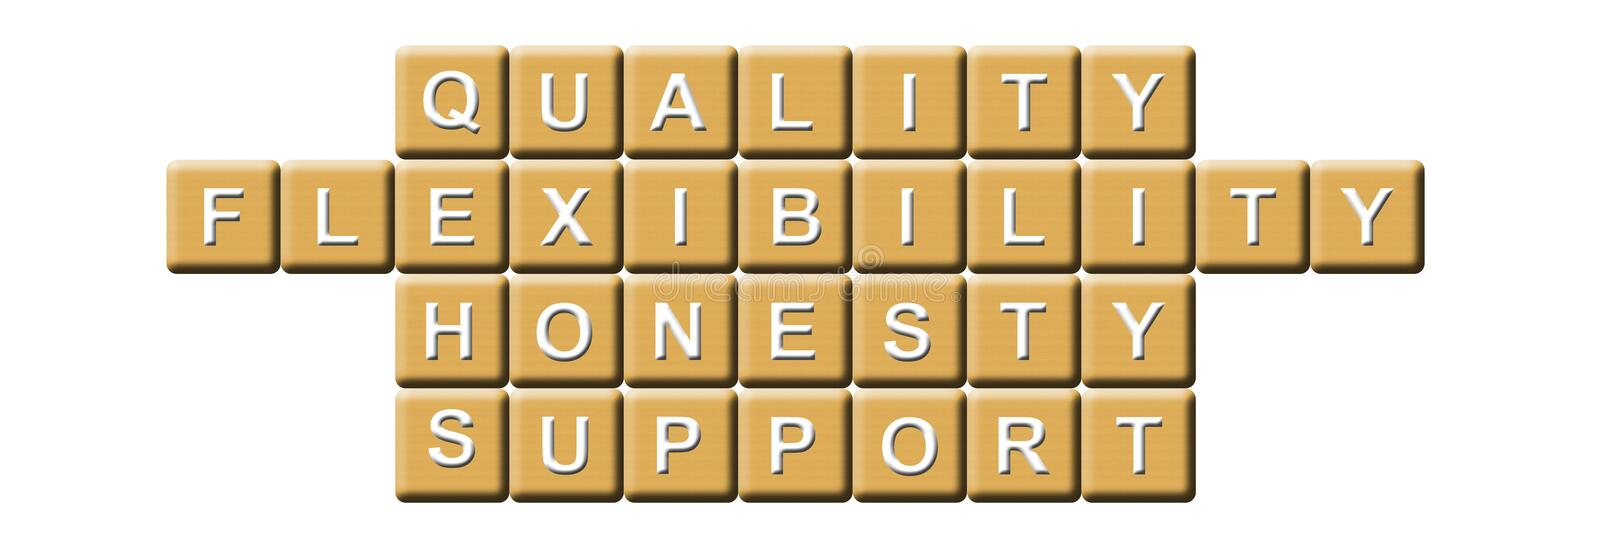 Quality,Flexibility,Honesty And Support Stock Images